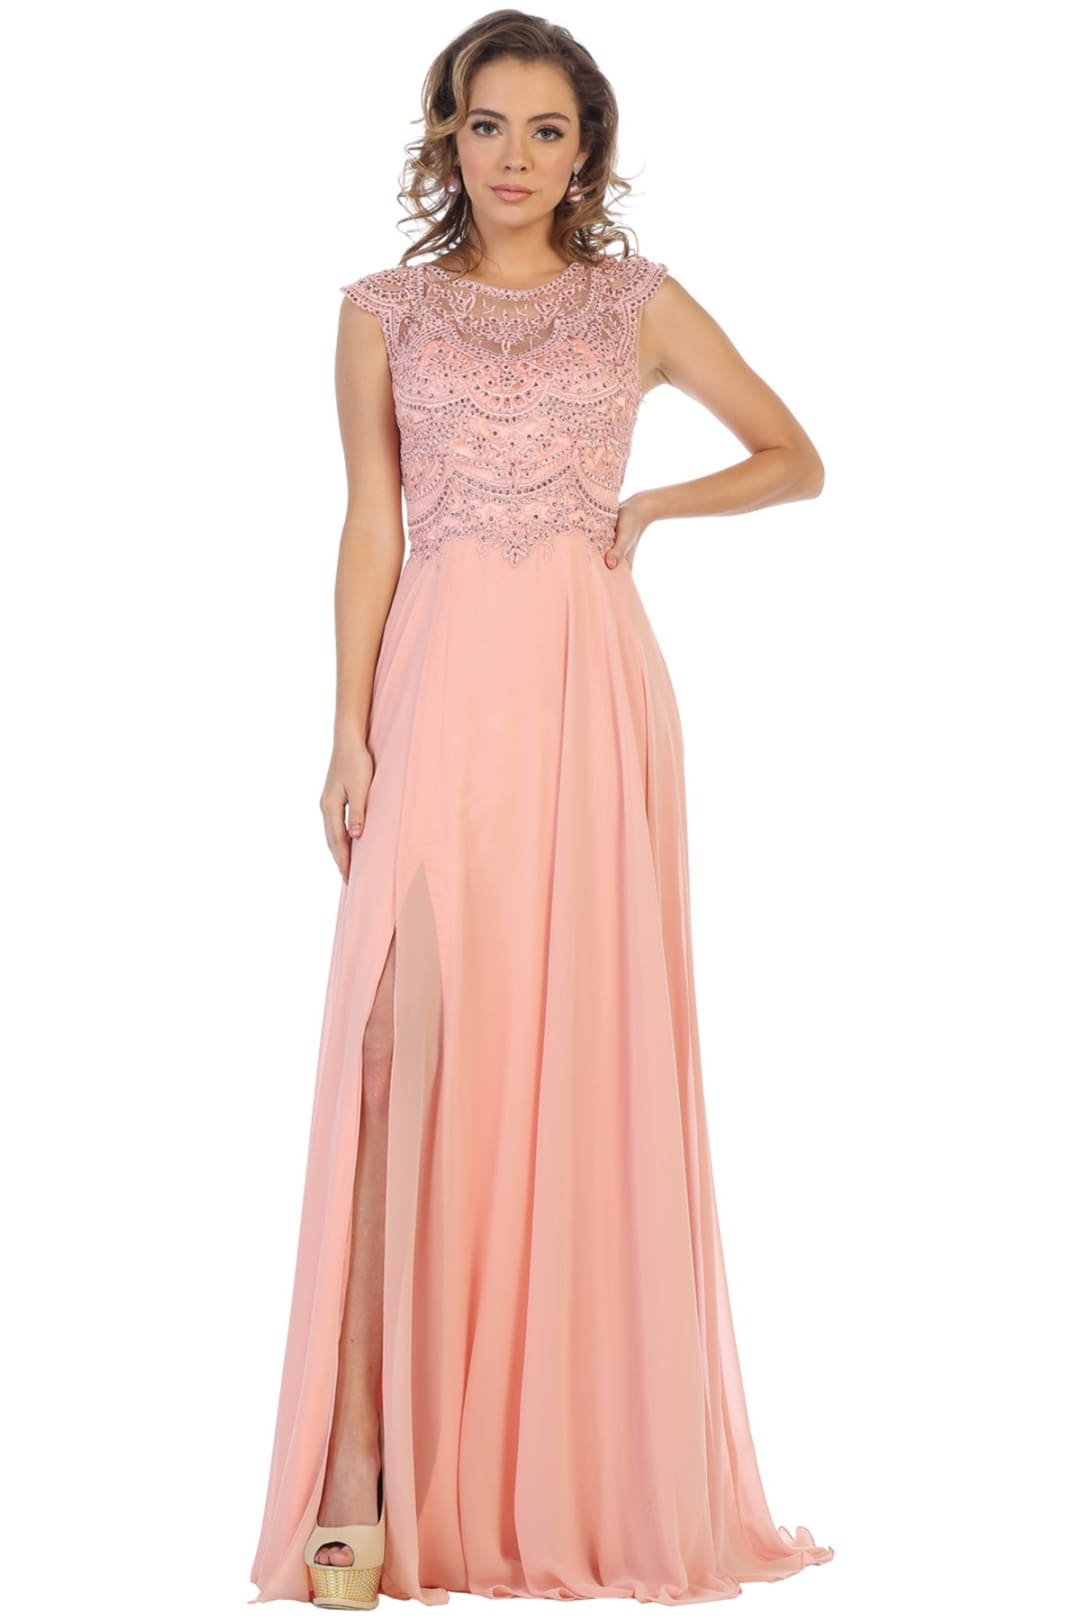 Elegant Formal Prom Gown - Dusty Rose / 4